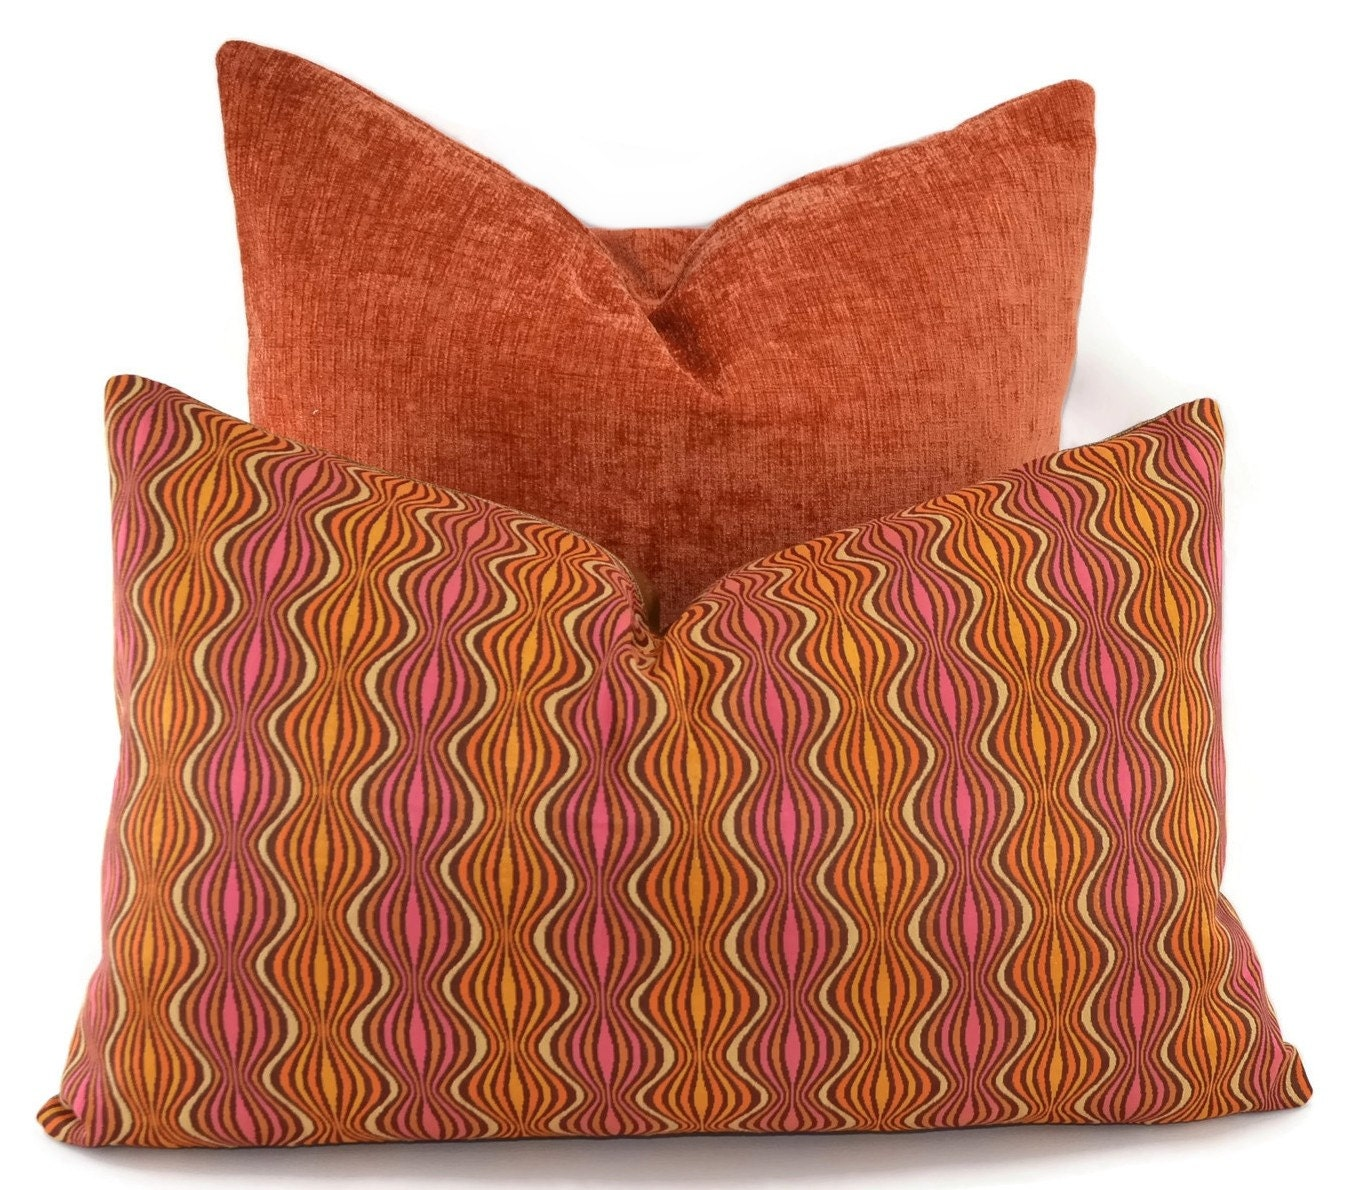 Mid Century Style Pillows : CLEARANCE Throw Pillow Cover Mid-Century Modern Design